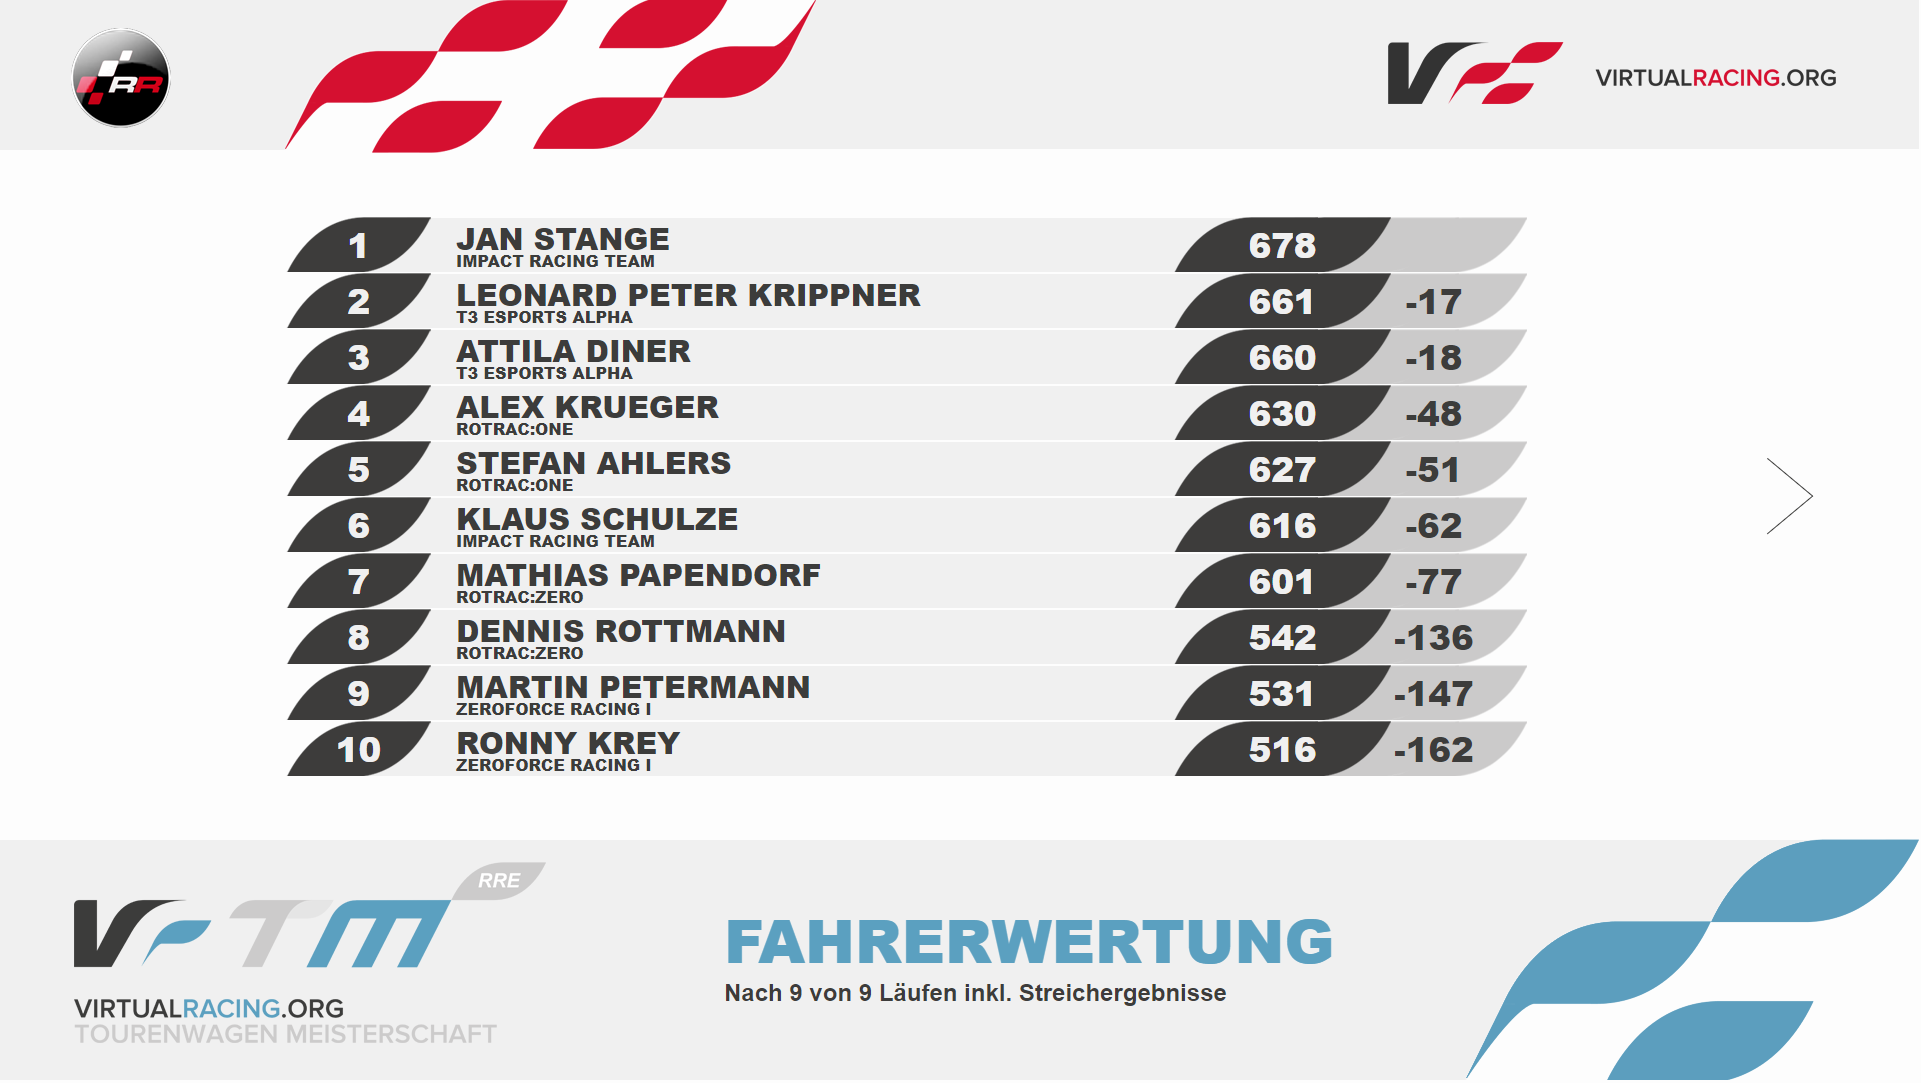 driver%20ranking%20s11.PNG